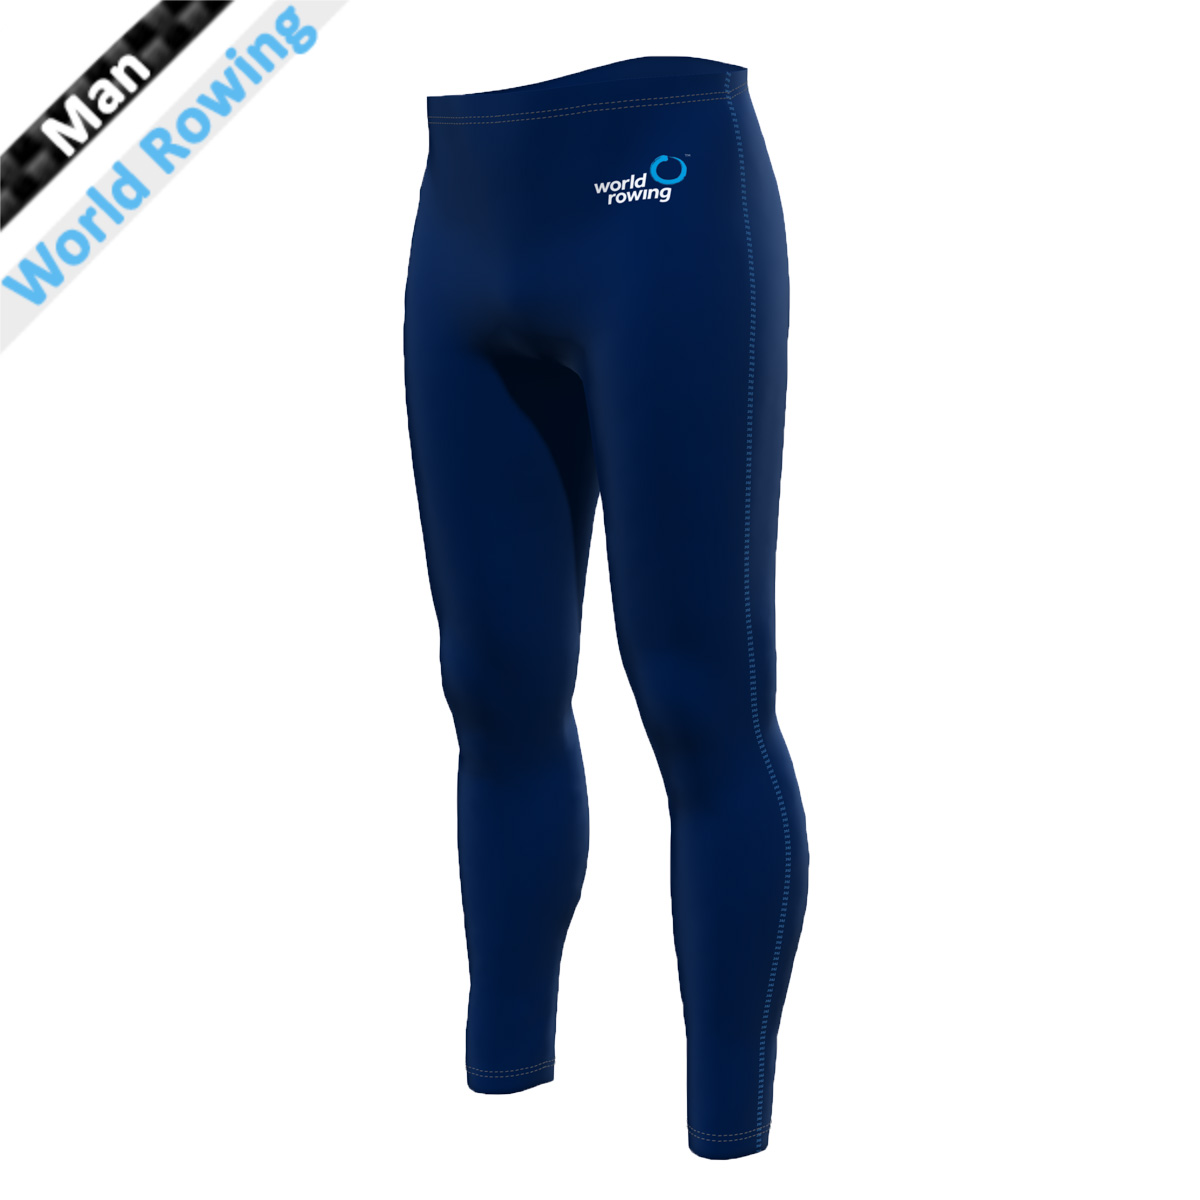 World Rowing Tights - marine blau